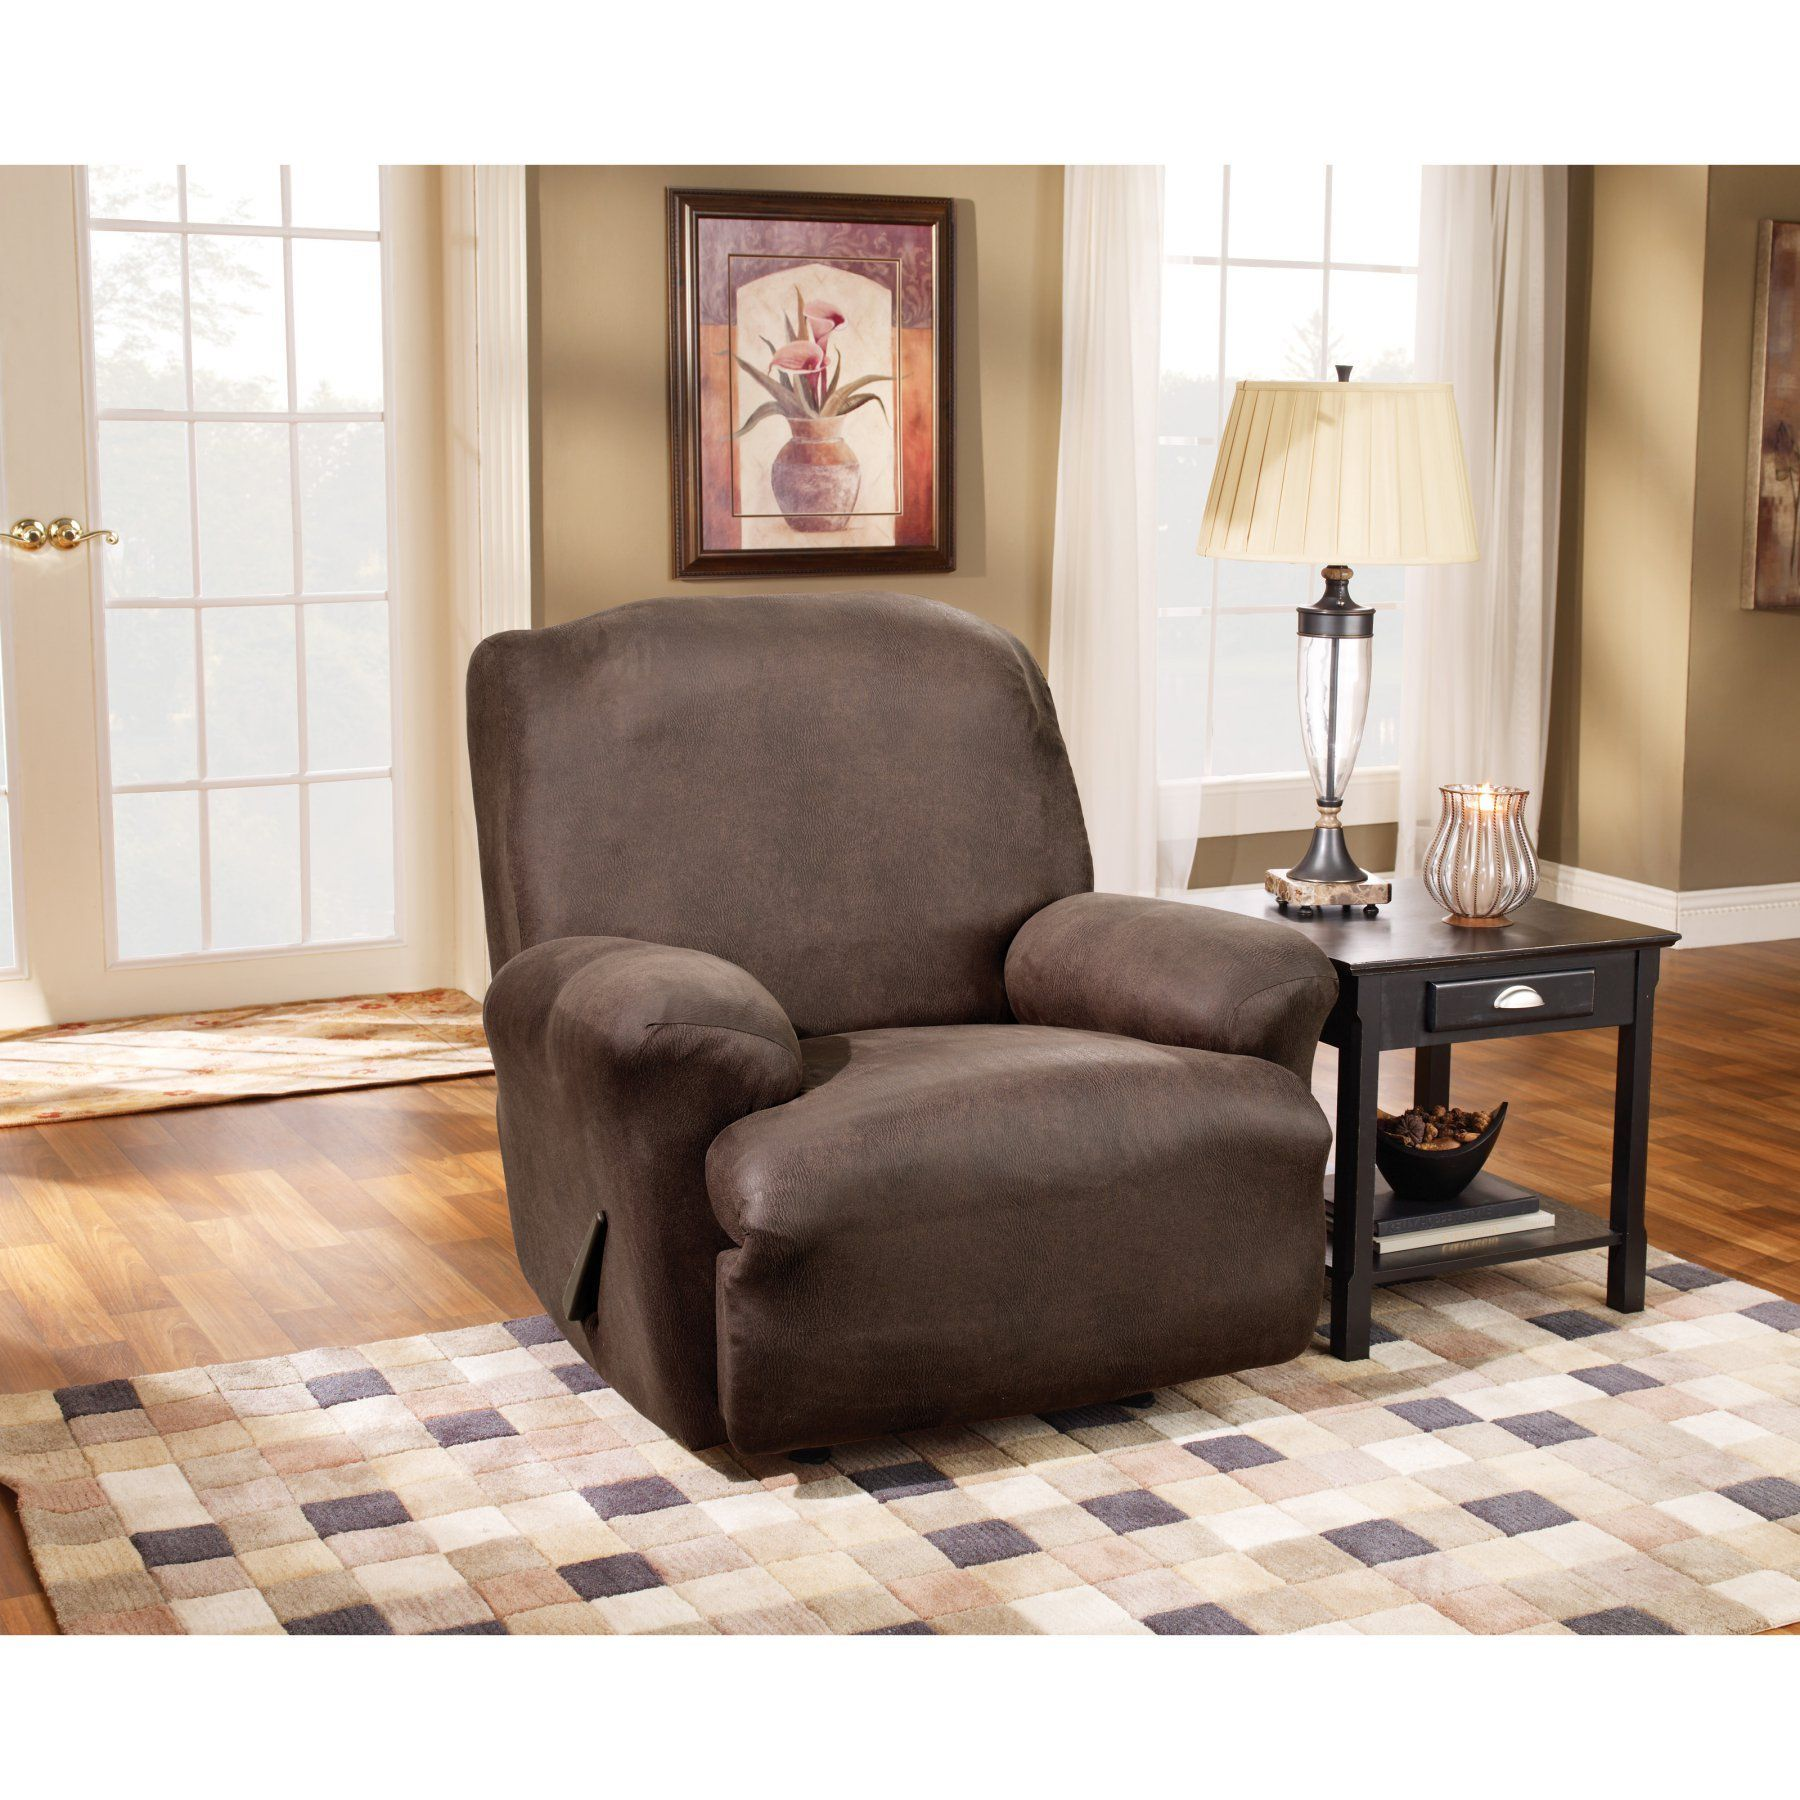 Sure Fit Stretch Leather Recliner Slipcover 37162